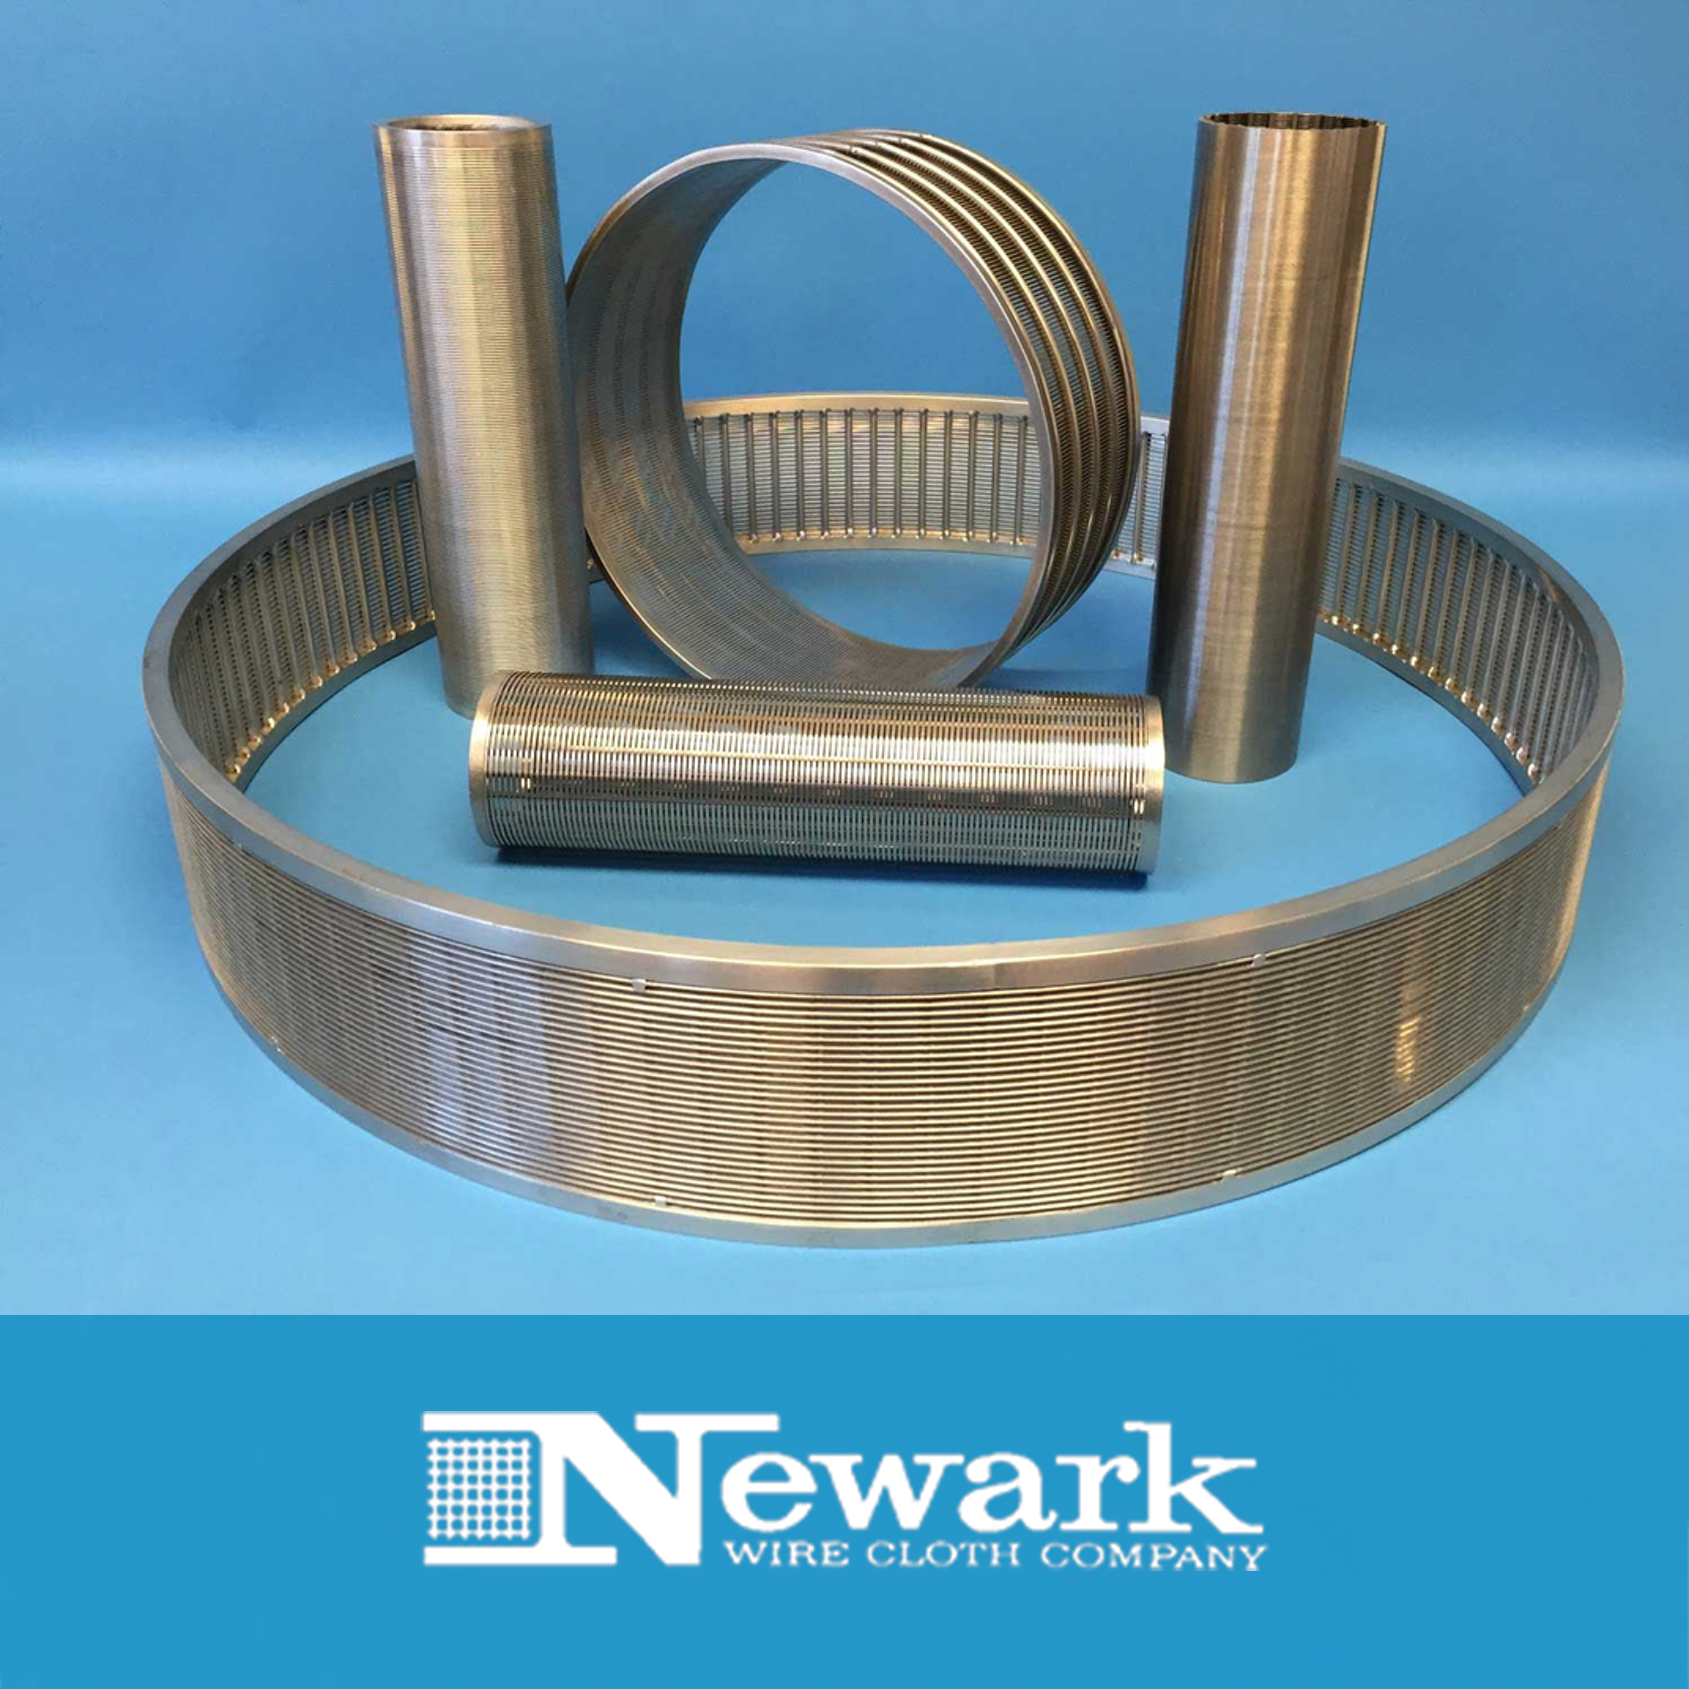 Engineered For Industry Commercial Filtration Products Newark Wire Wiring Dummies Industrial Filters And Strainers Are A Bit Like Fishing Flies They Share Lot Of Basic Components But Small Differences Can Have Large Consequences When